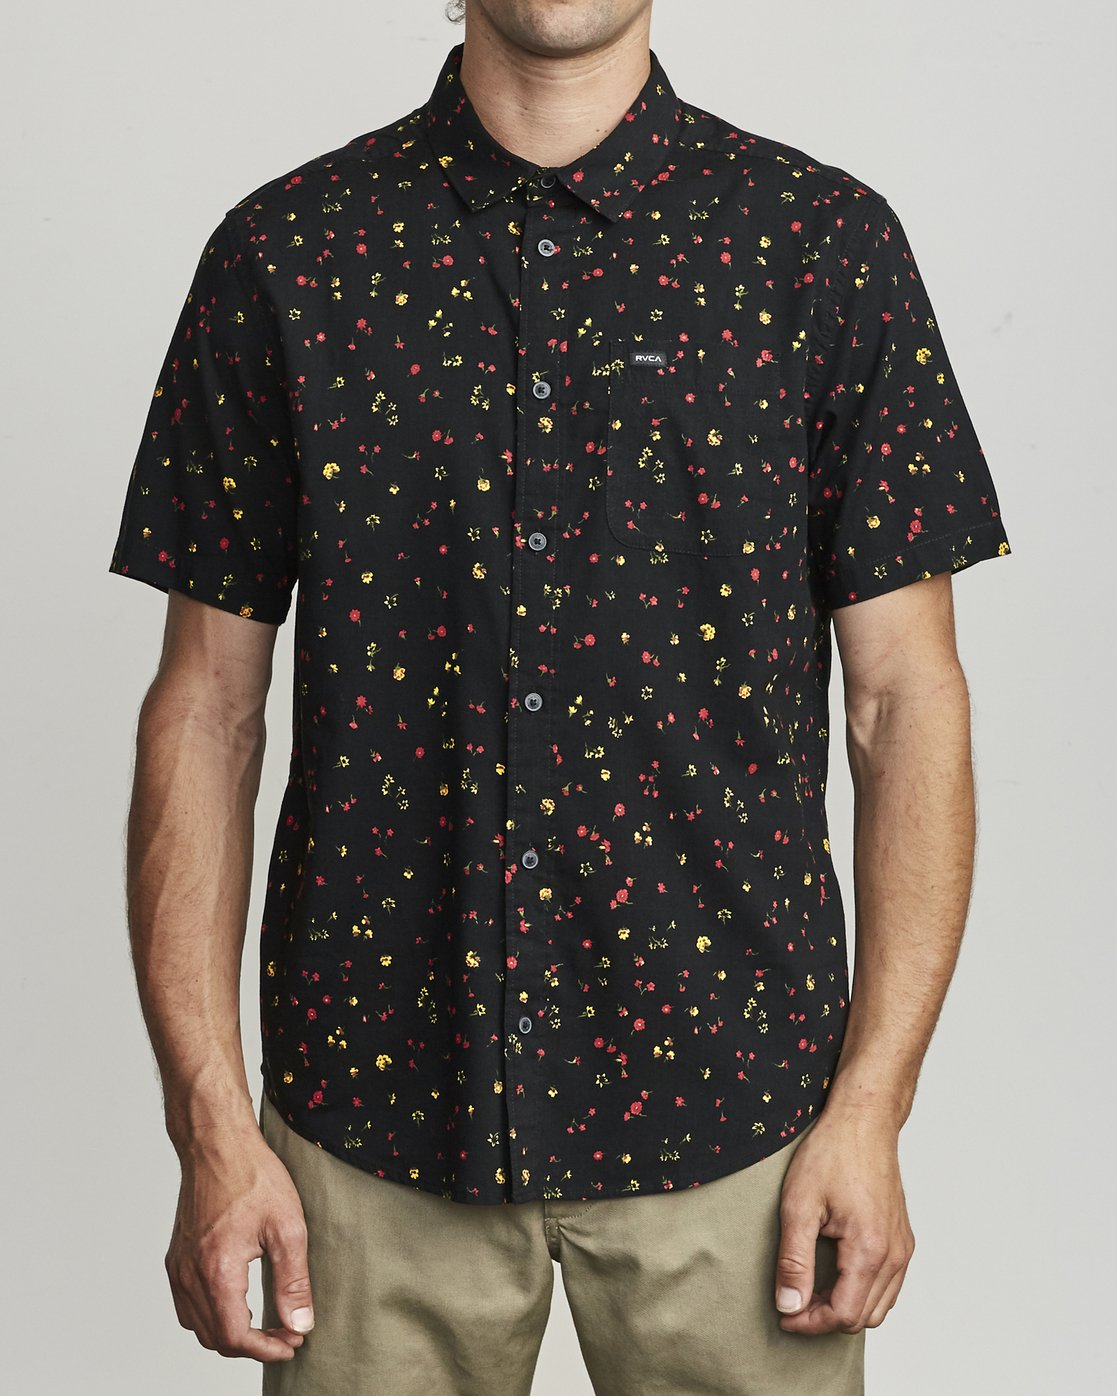 0 CALICO BUTTON-UP SHIRT Black M5071RCL RVCA